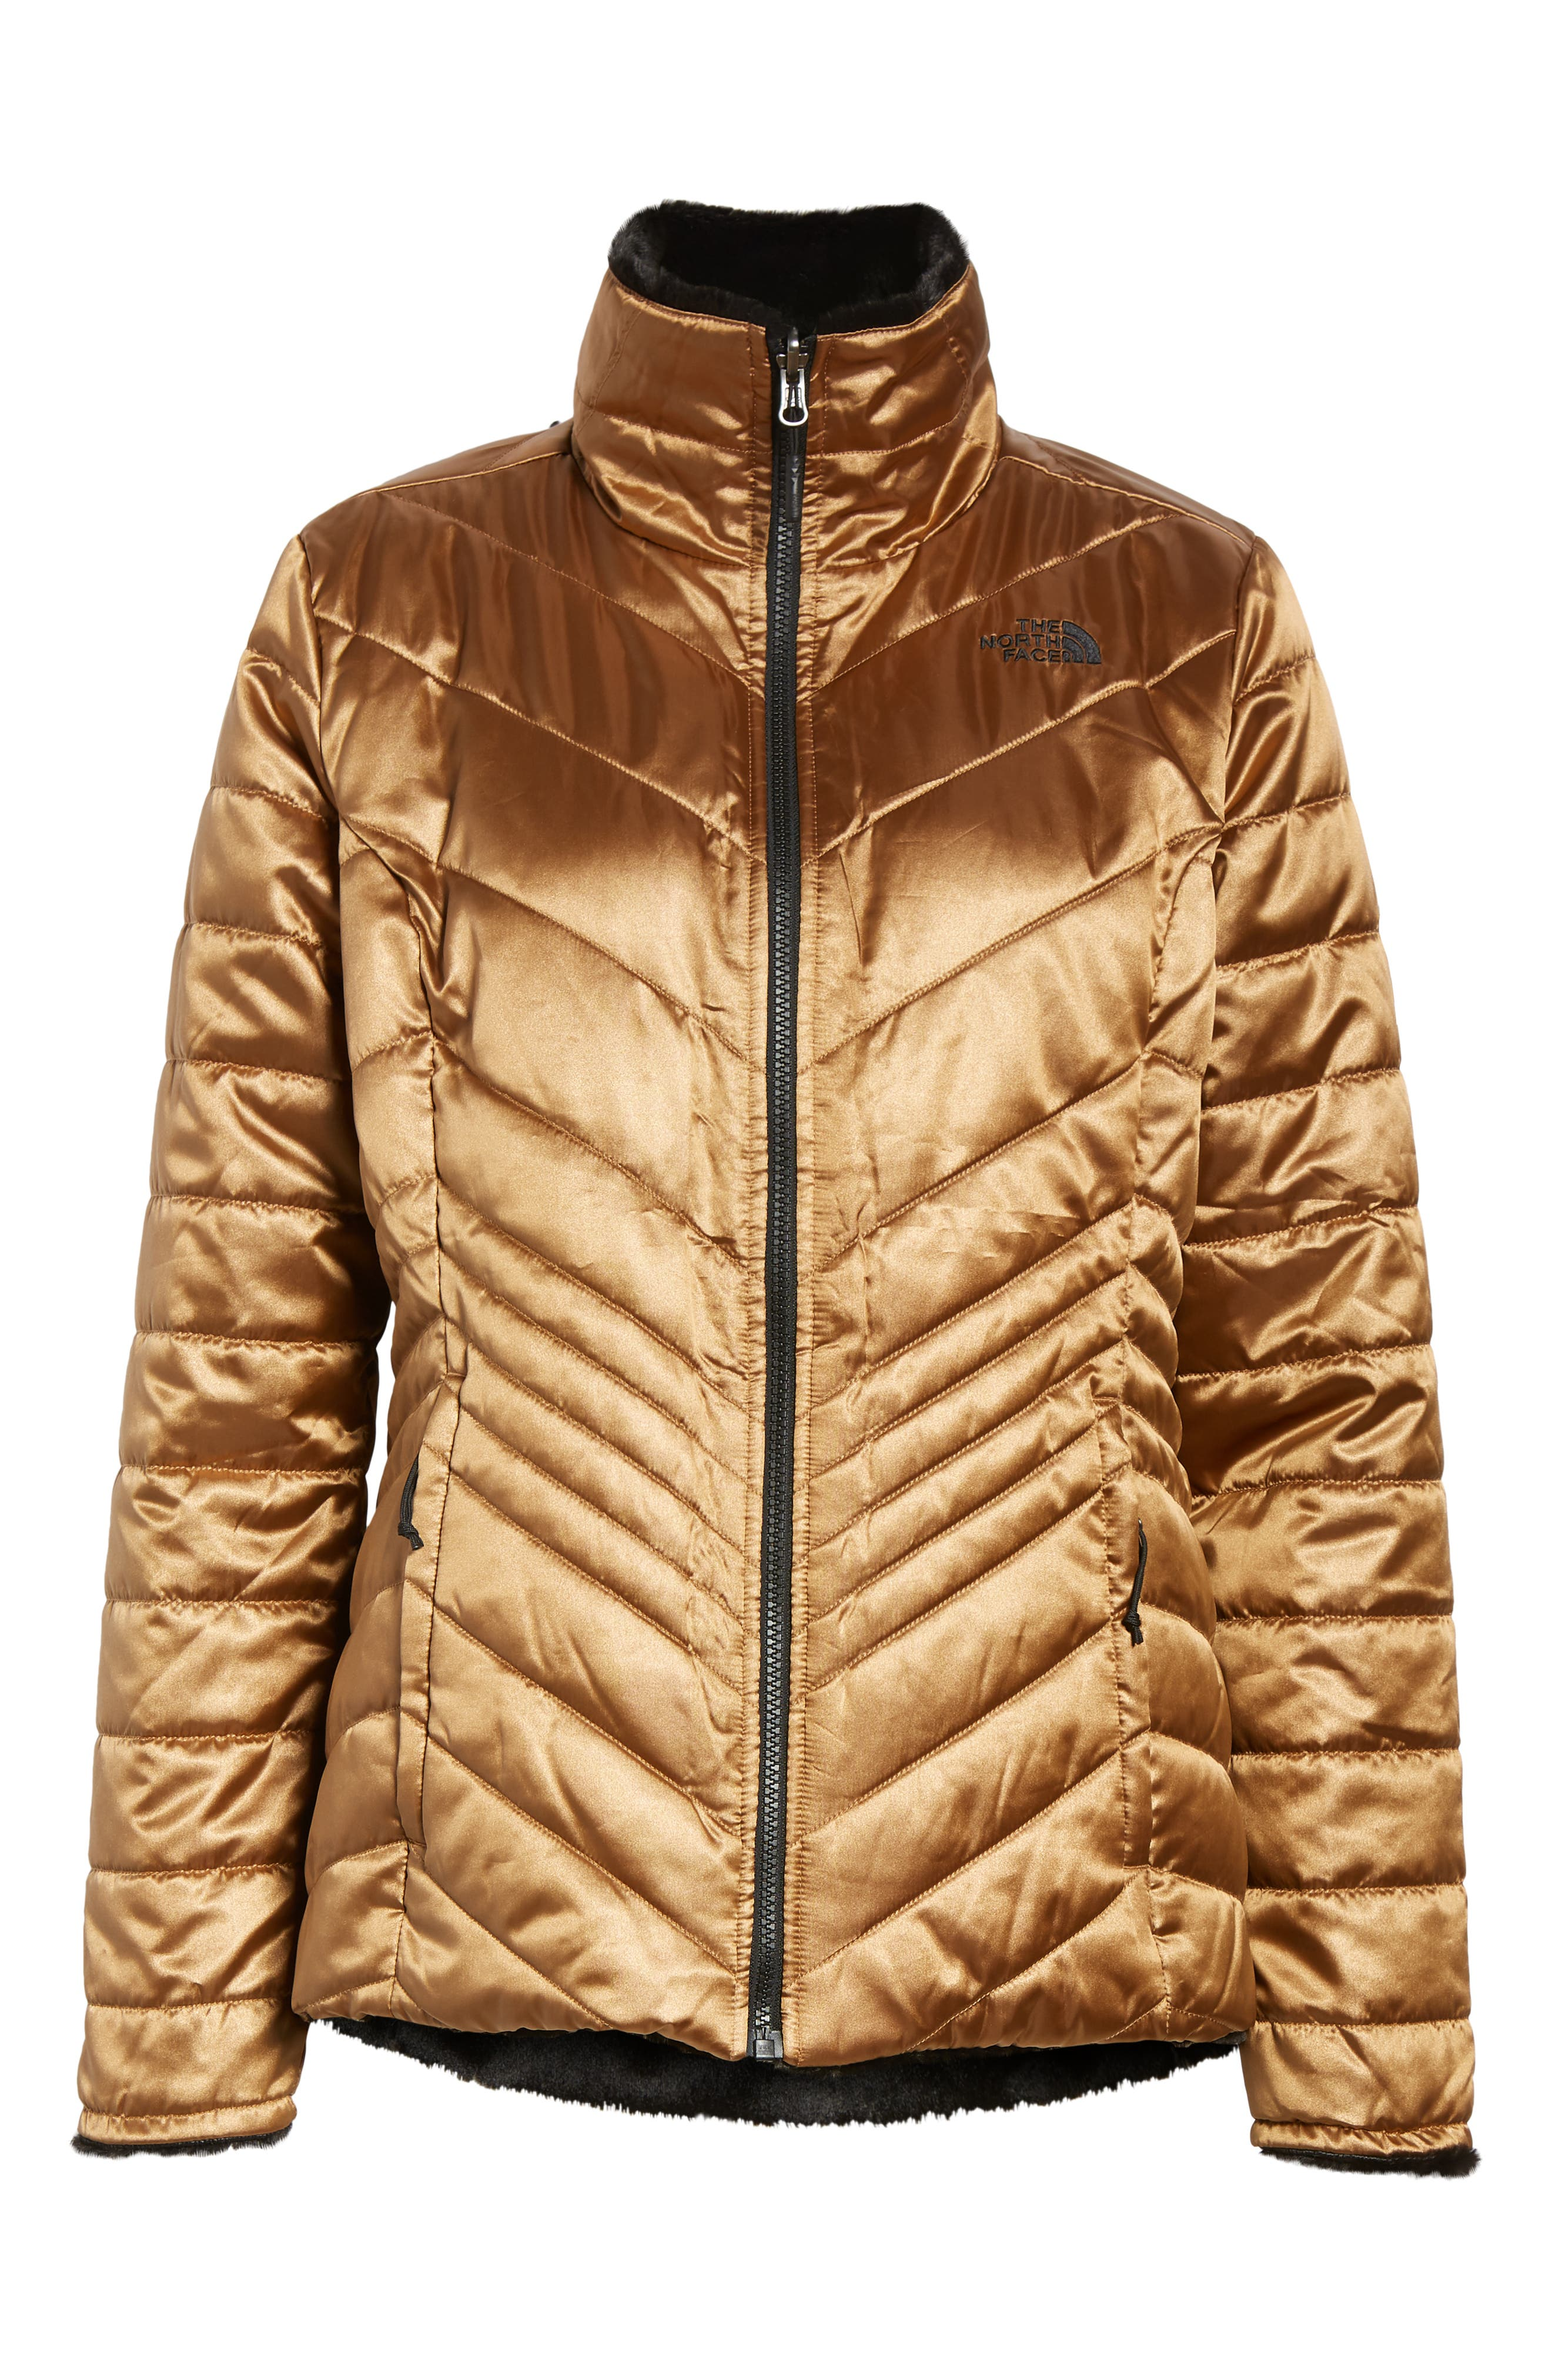 THE NORTH FACE, Mossbud Reversible Heatseeker<sup>™</sup> Wind Resistant Jacket, Alternate thumbnail 7, color, METALLIC COPPER/ TNF BLACK